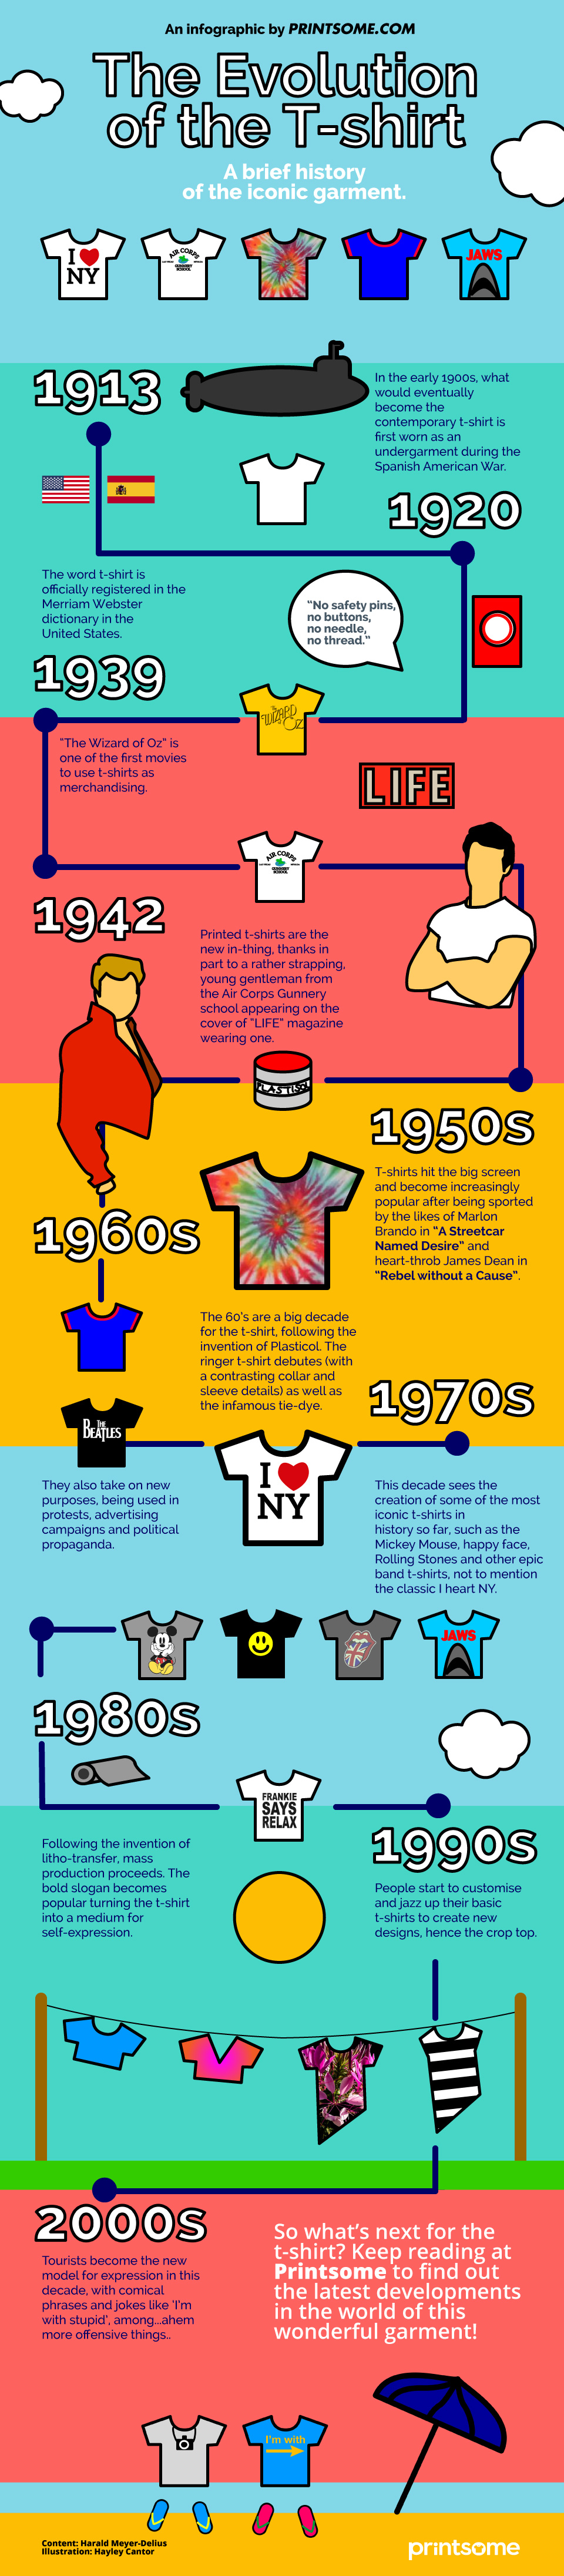 evolution-of-the-t-shirt-infographic_standard